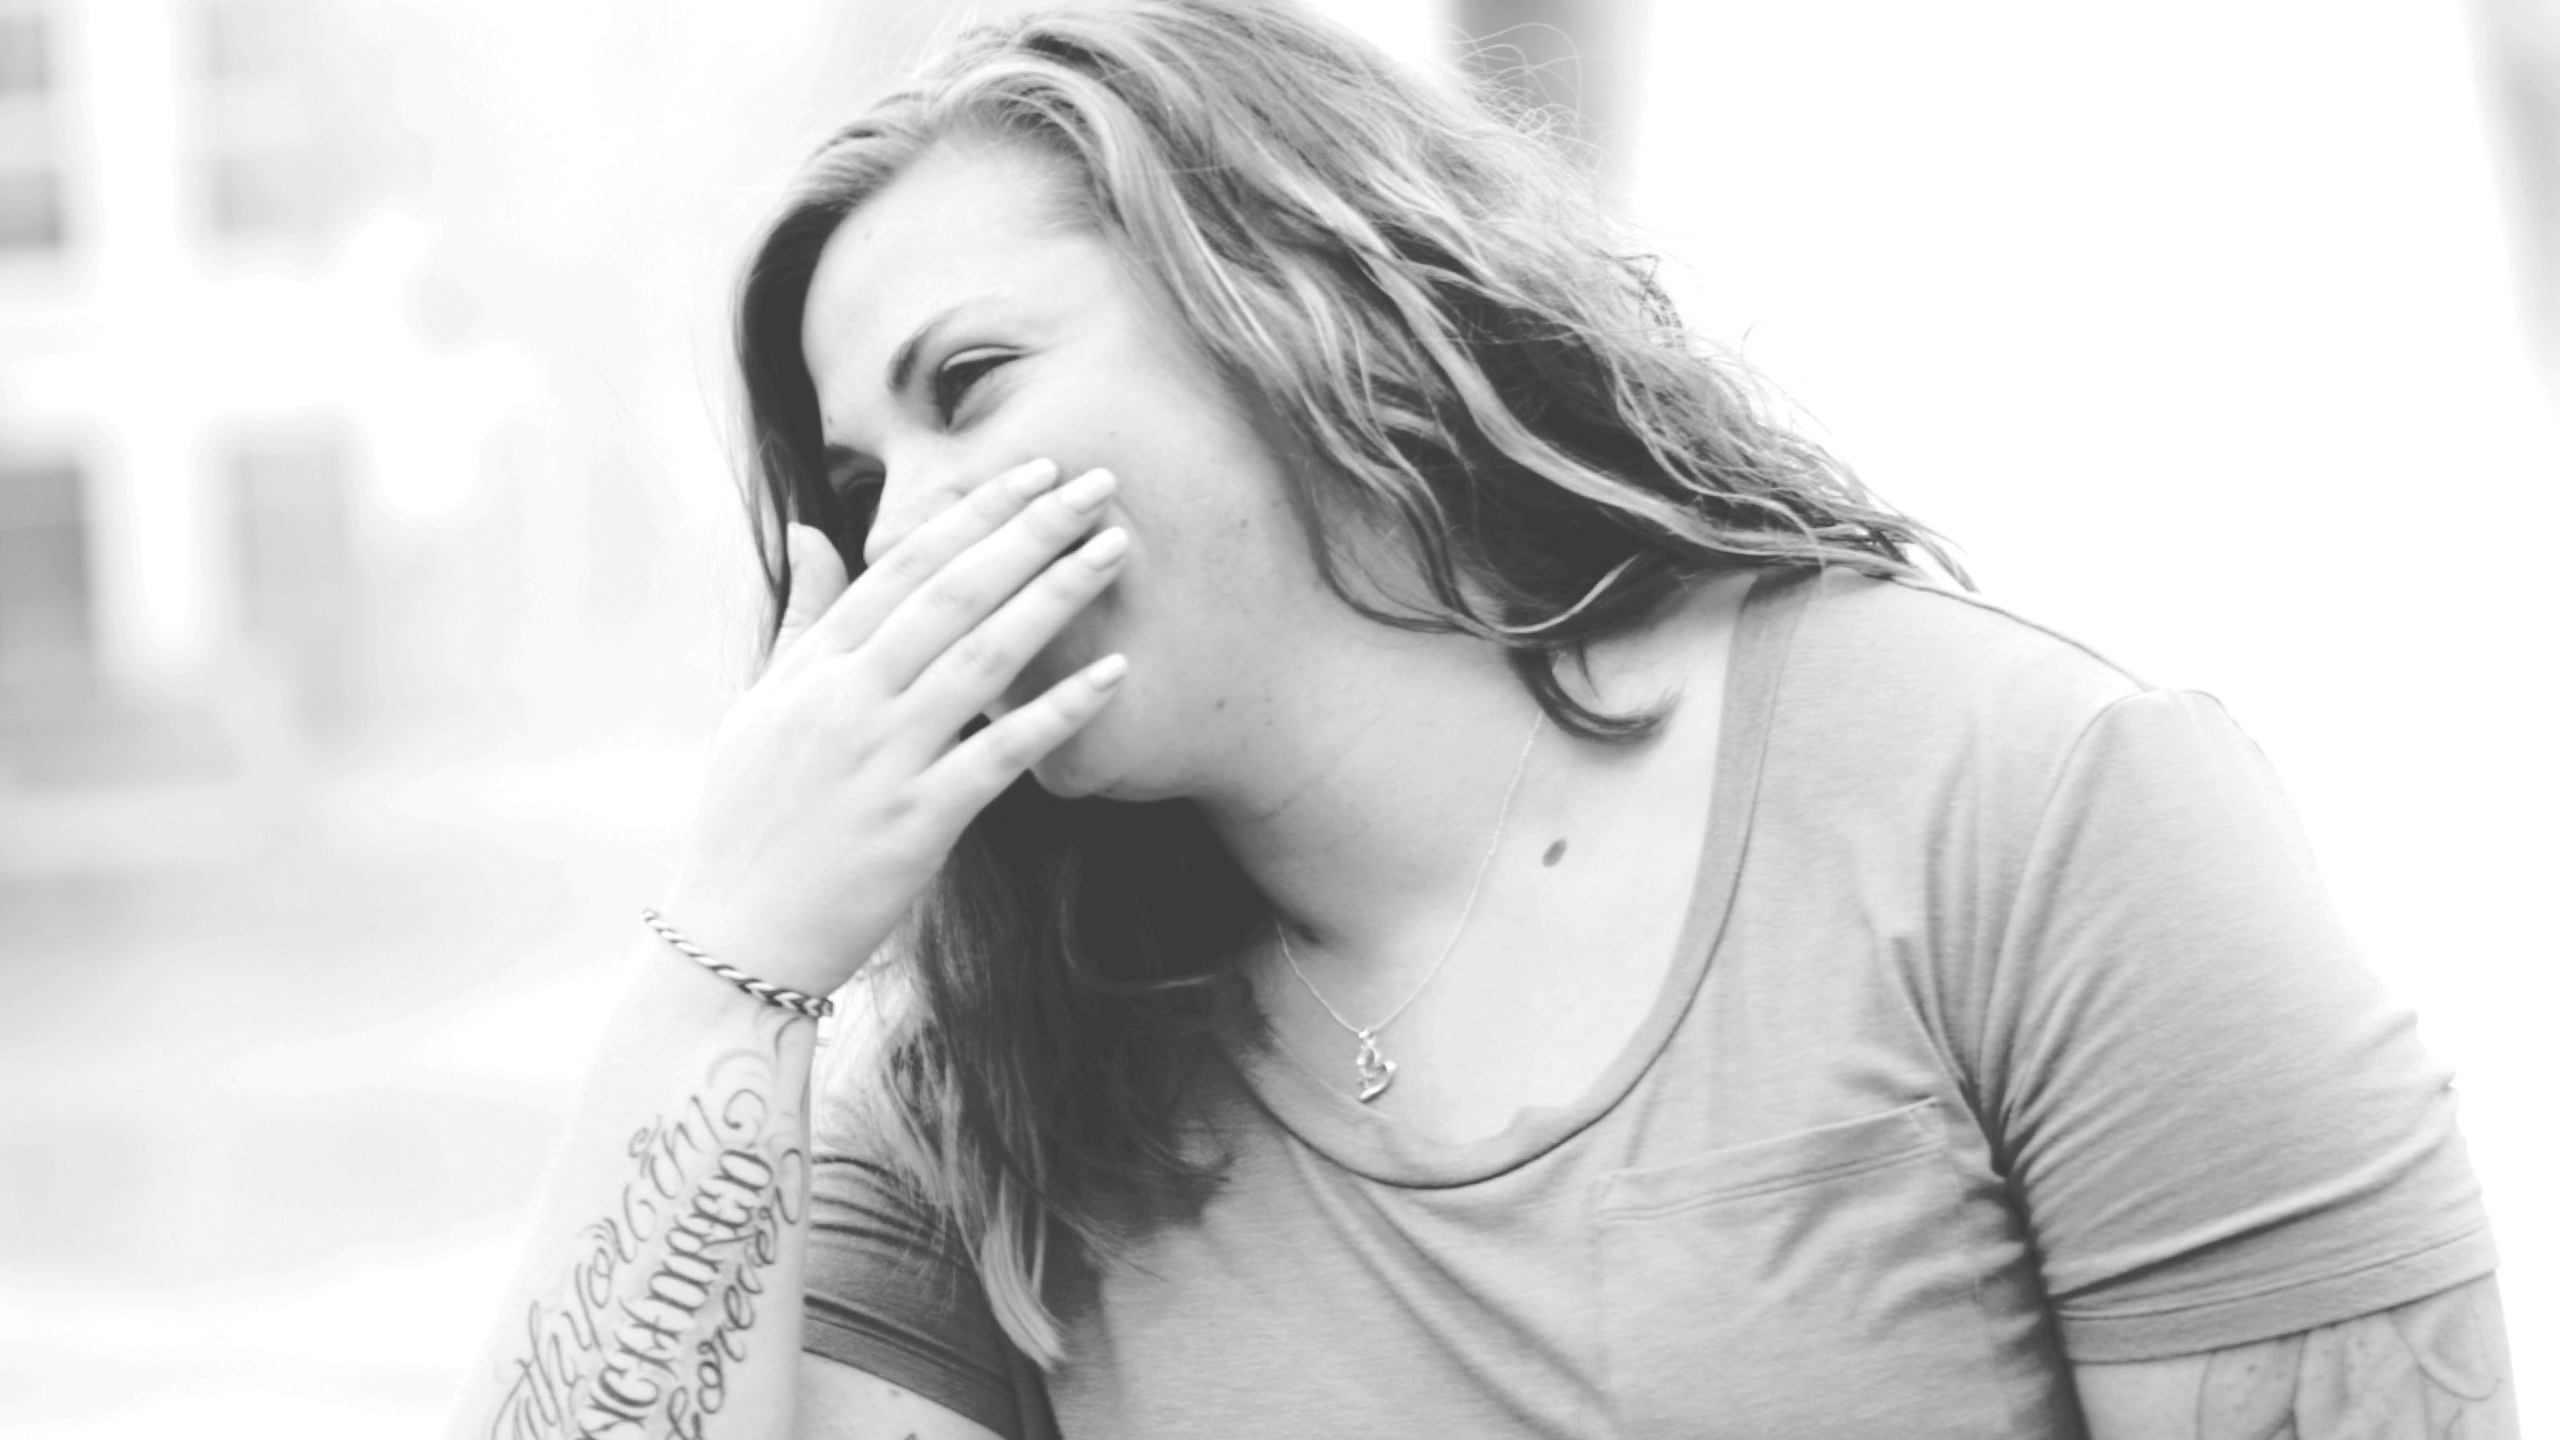 black and white image of a woman with tattoos, covering her mouth with her hand as she laughs